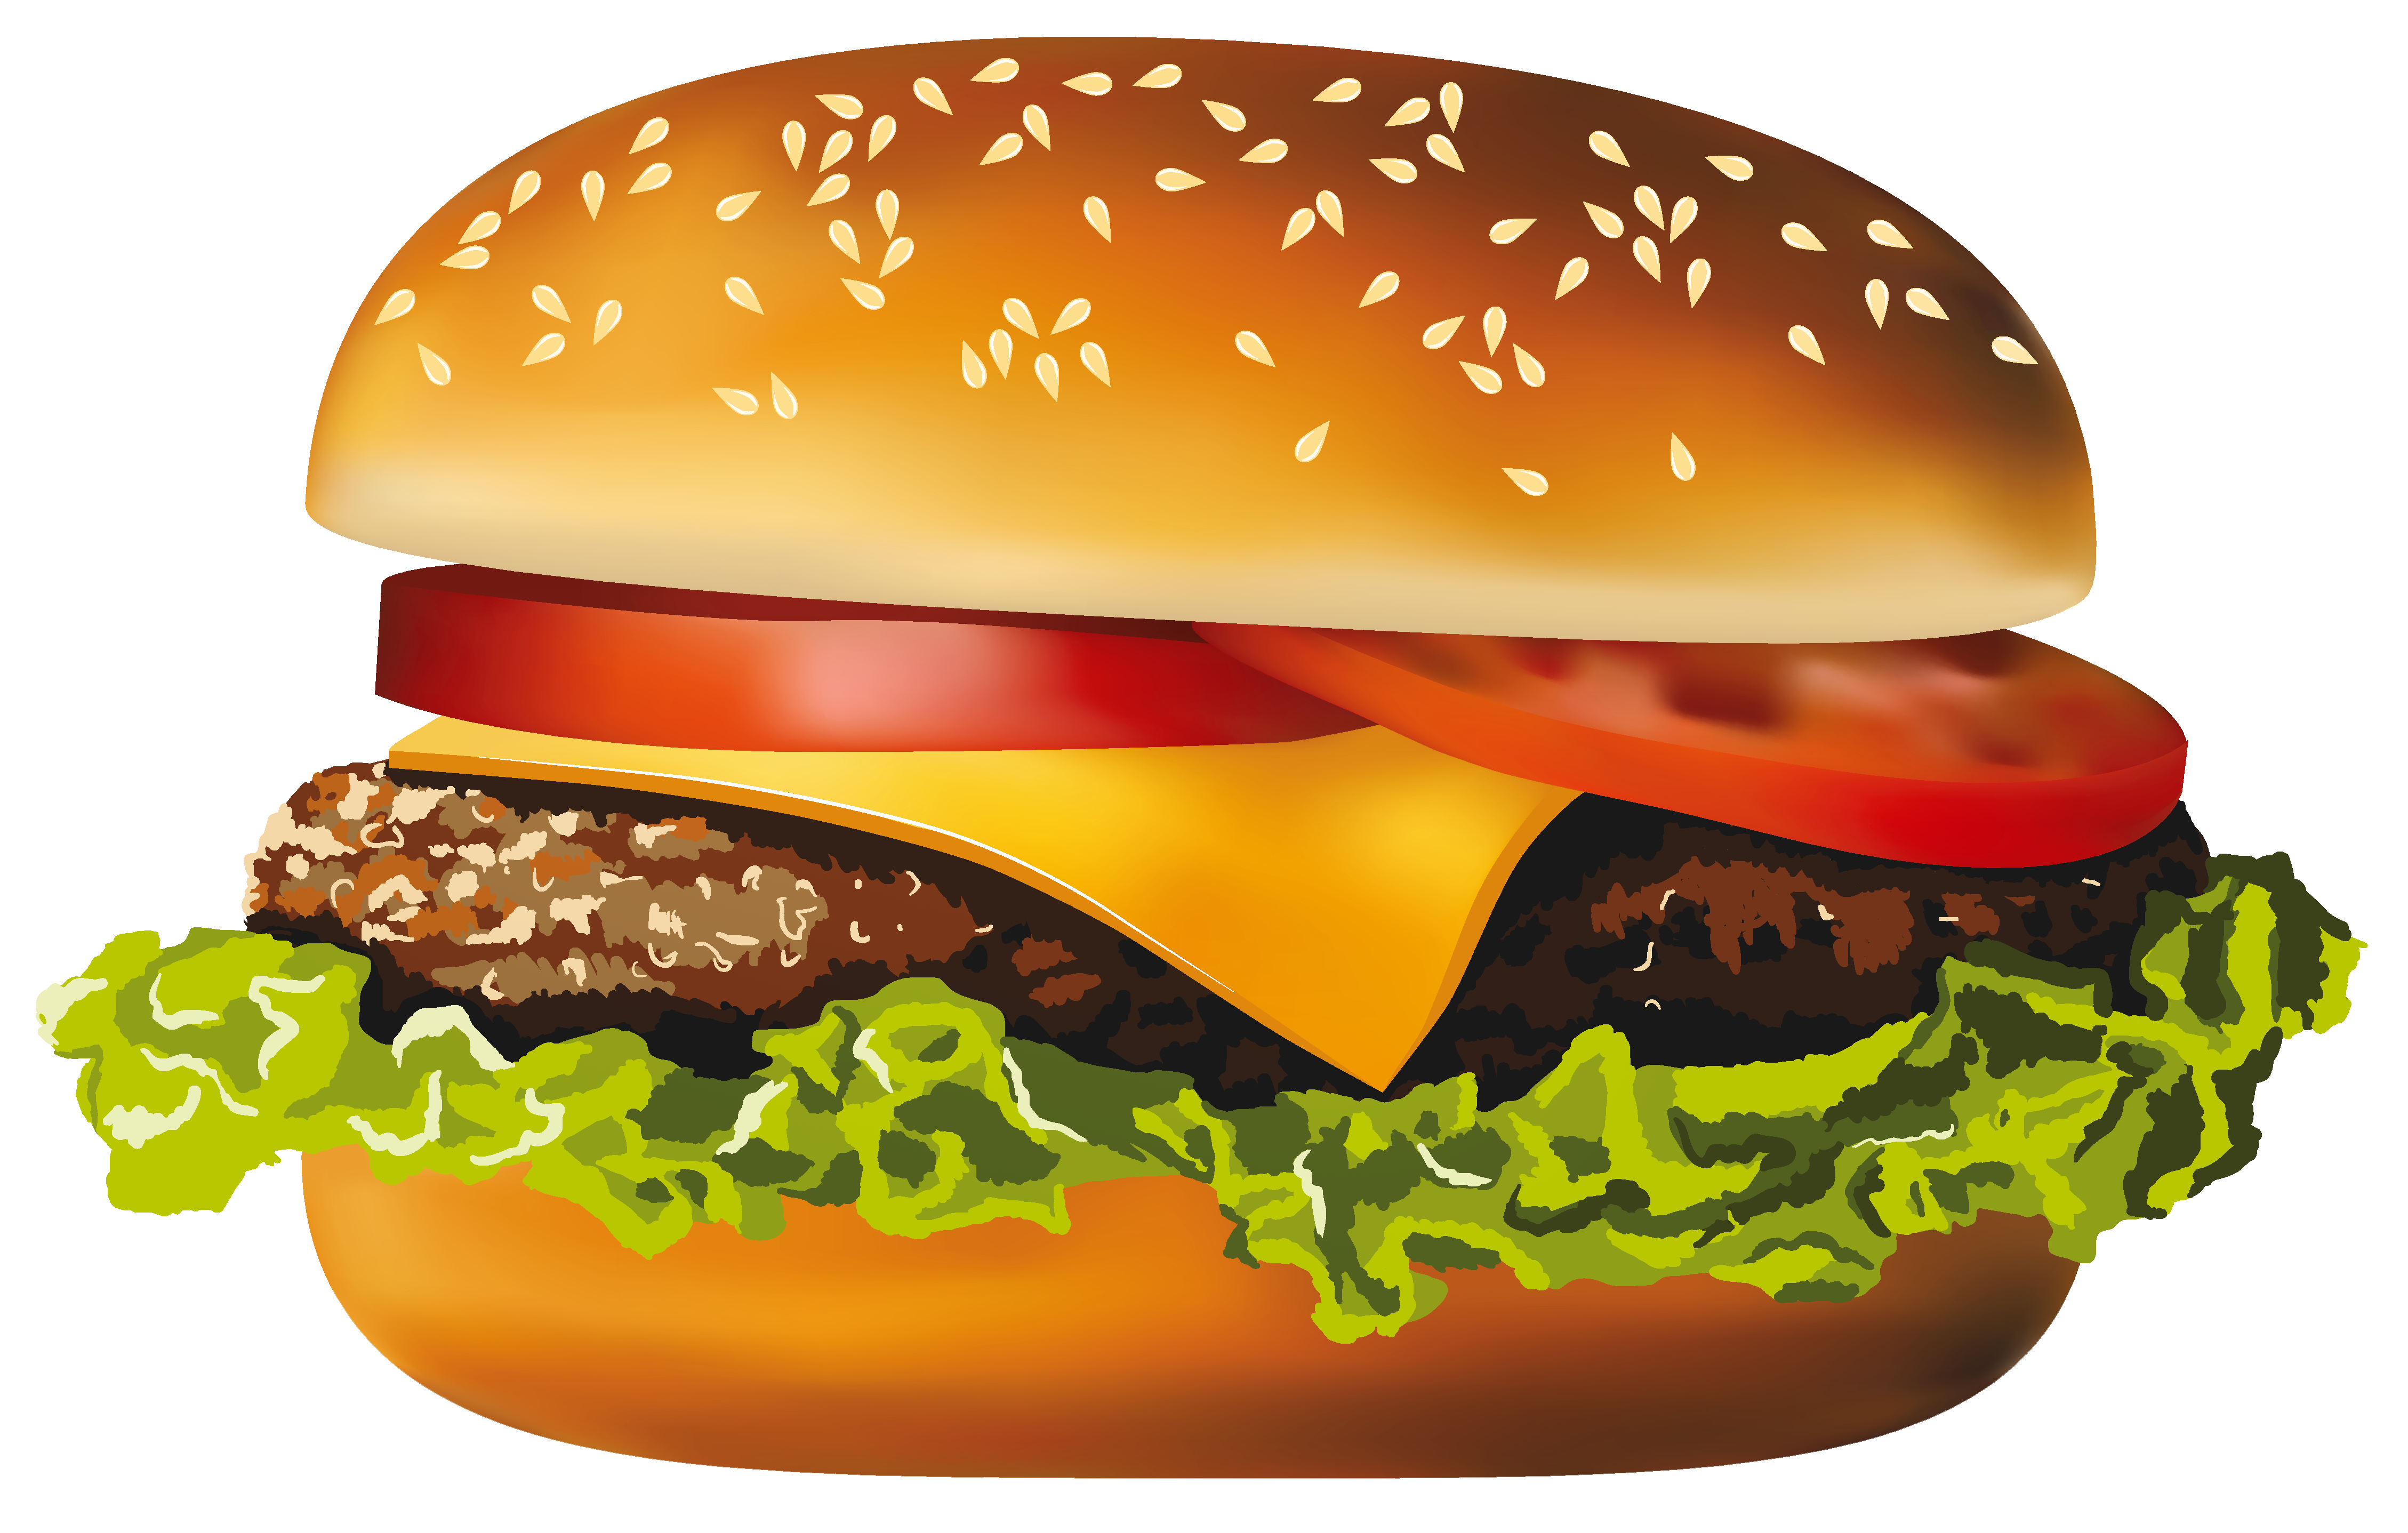 Clipart hamburguer image black and white Pin by Rosa Arias on frutas in 2019   Hamburger, Food png, Vector ... image black and white